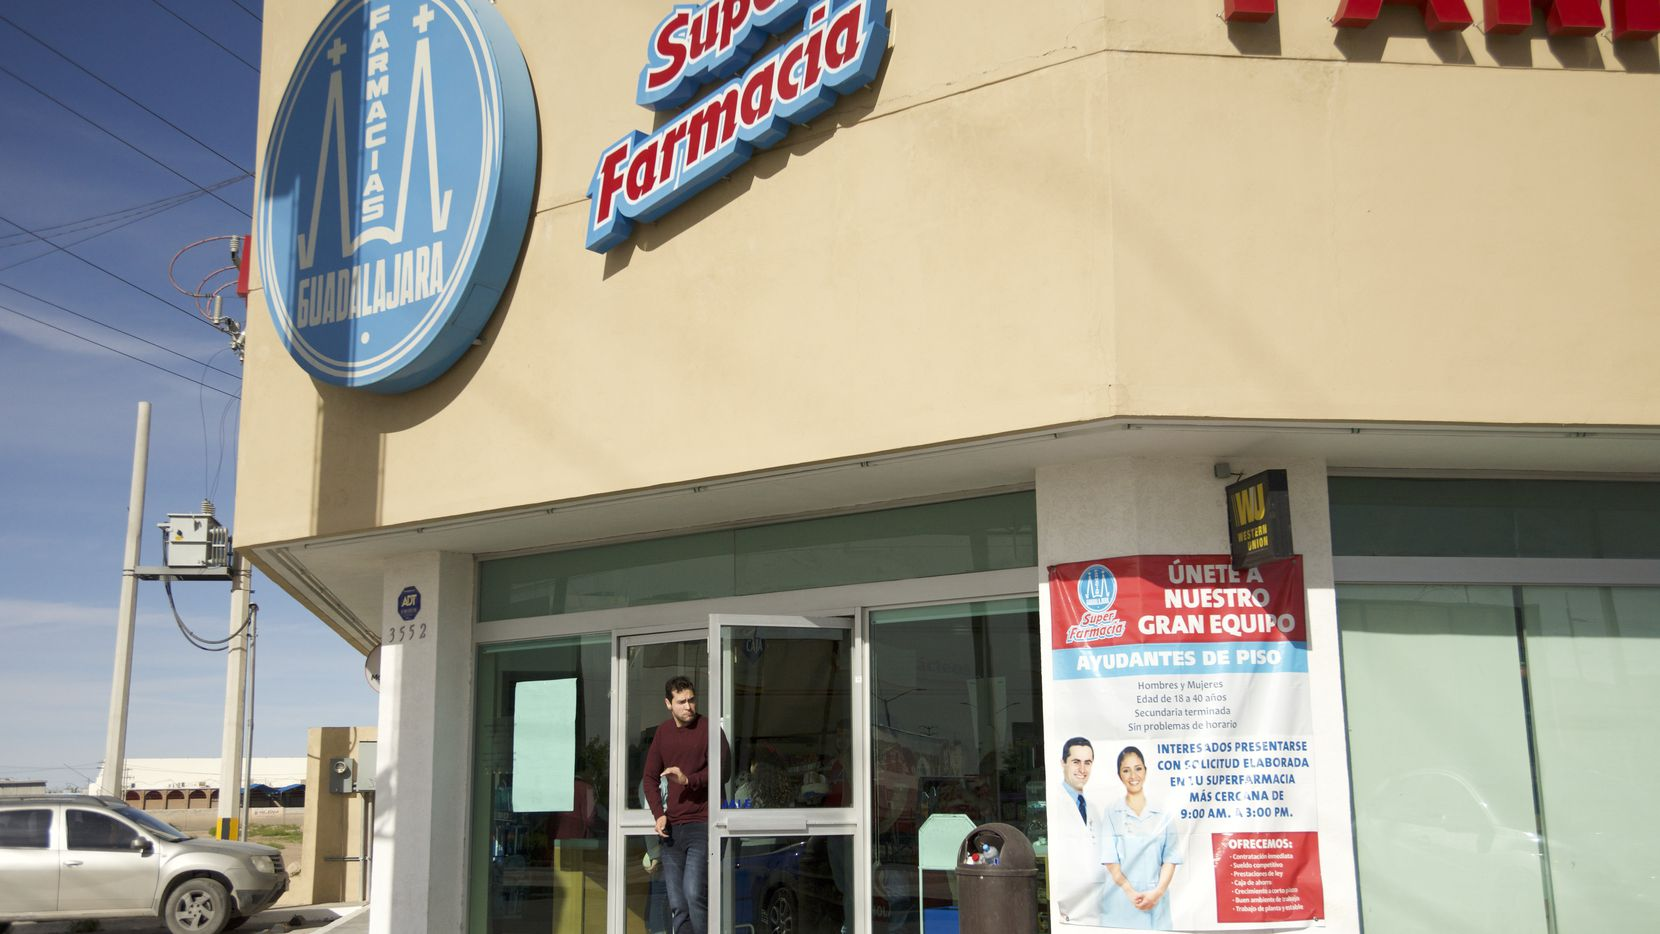 At a Farmacias Guadalajara, a Mexican pharmacy chain in Ciudad Juarez, employees have noticed a recent dramatic spike in customers coming from the U.S. looking for cheaper hygienic products and medication.